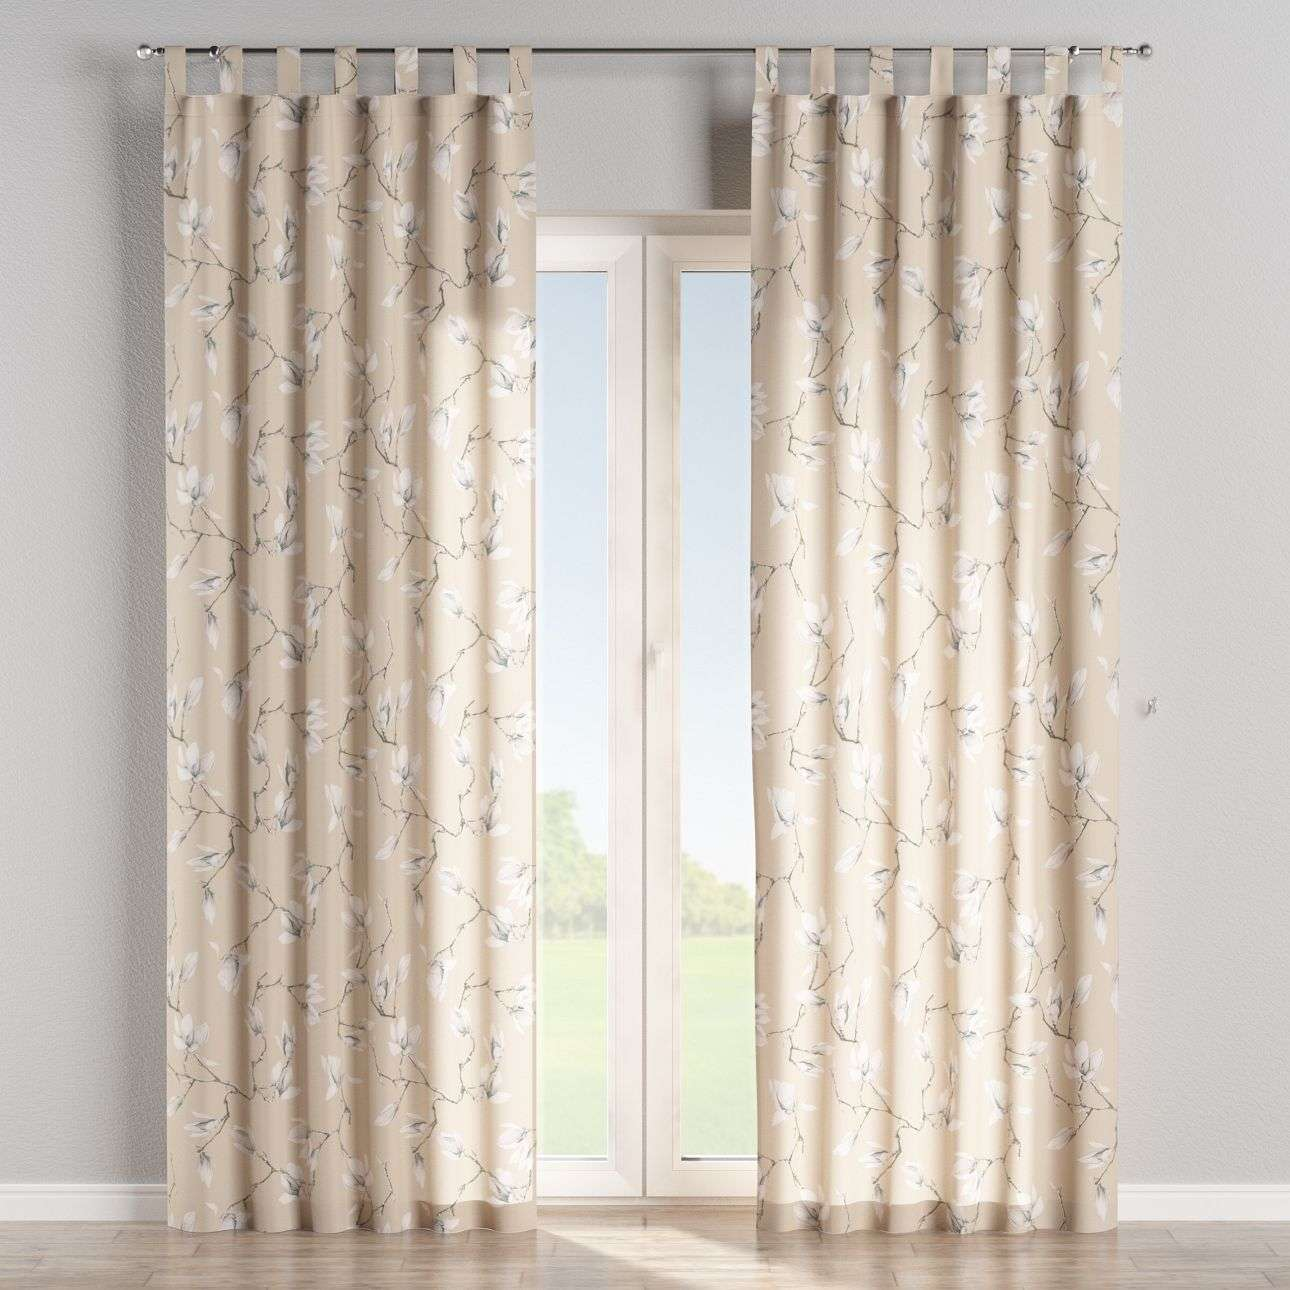 Tab top curtains in collection Flowers, fabric: 311-12